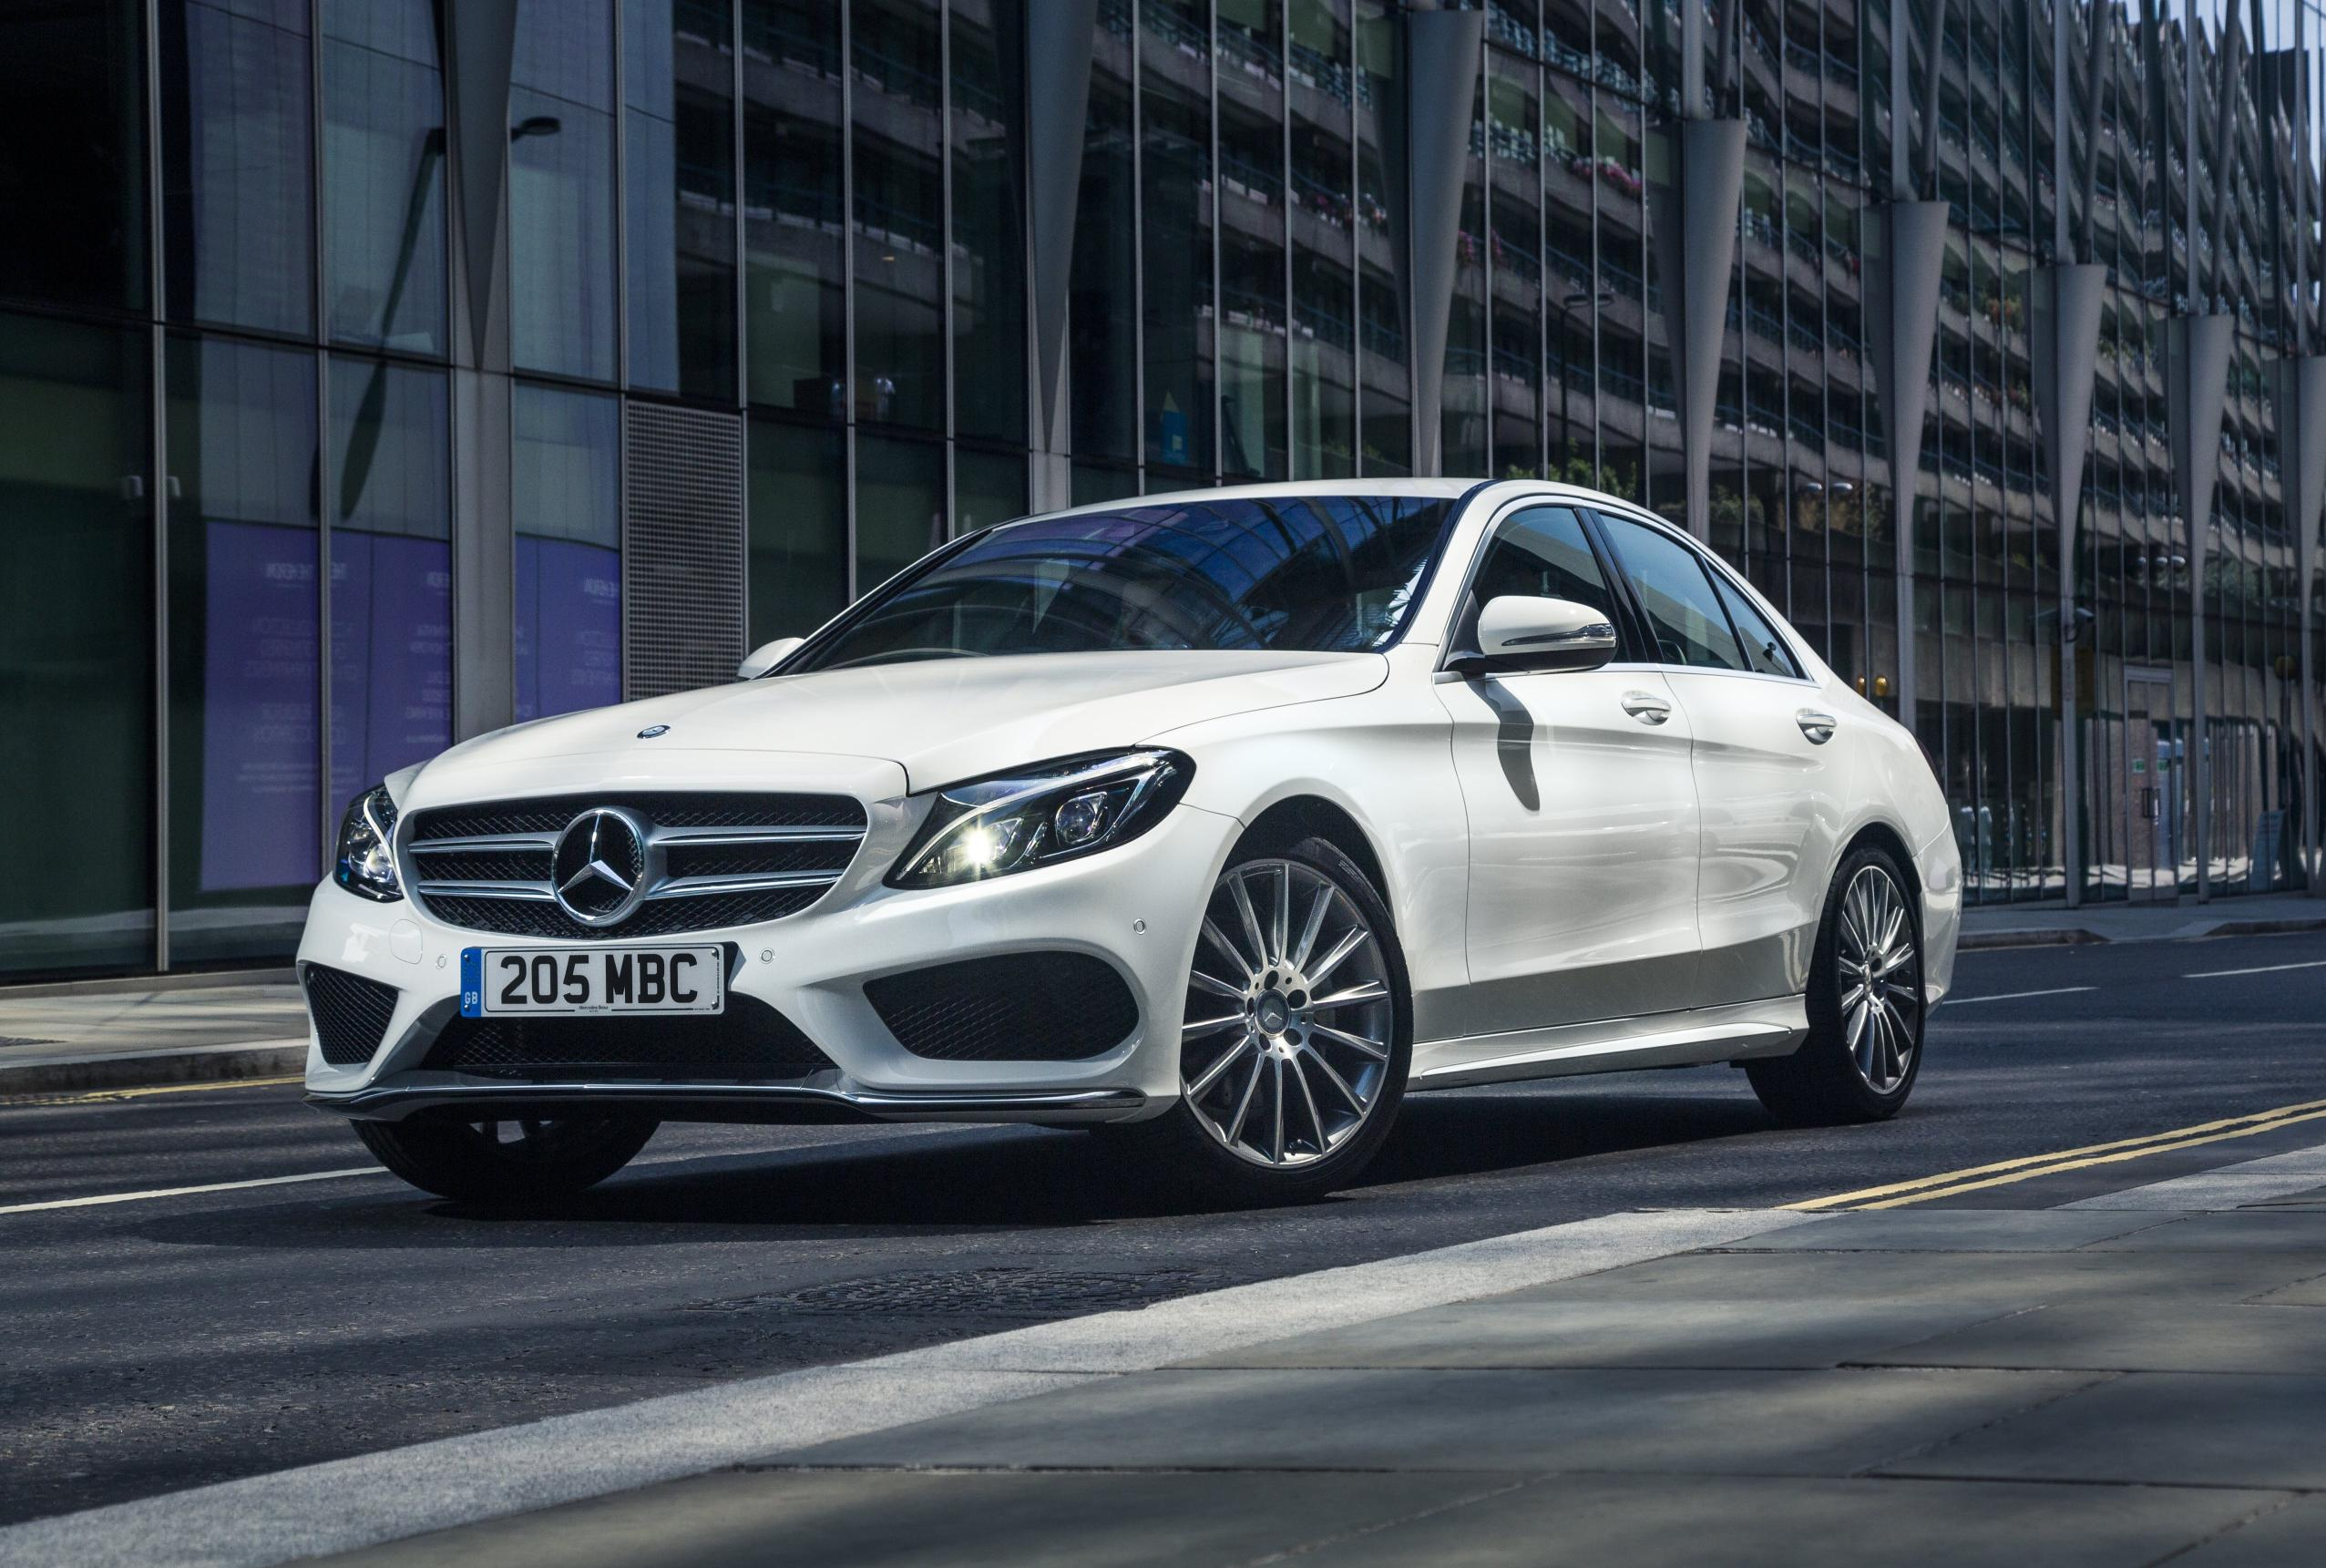 2015 mercedes benz c class launch date revealed for Benz mercedes c class